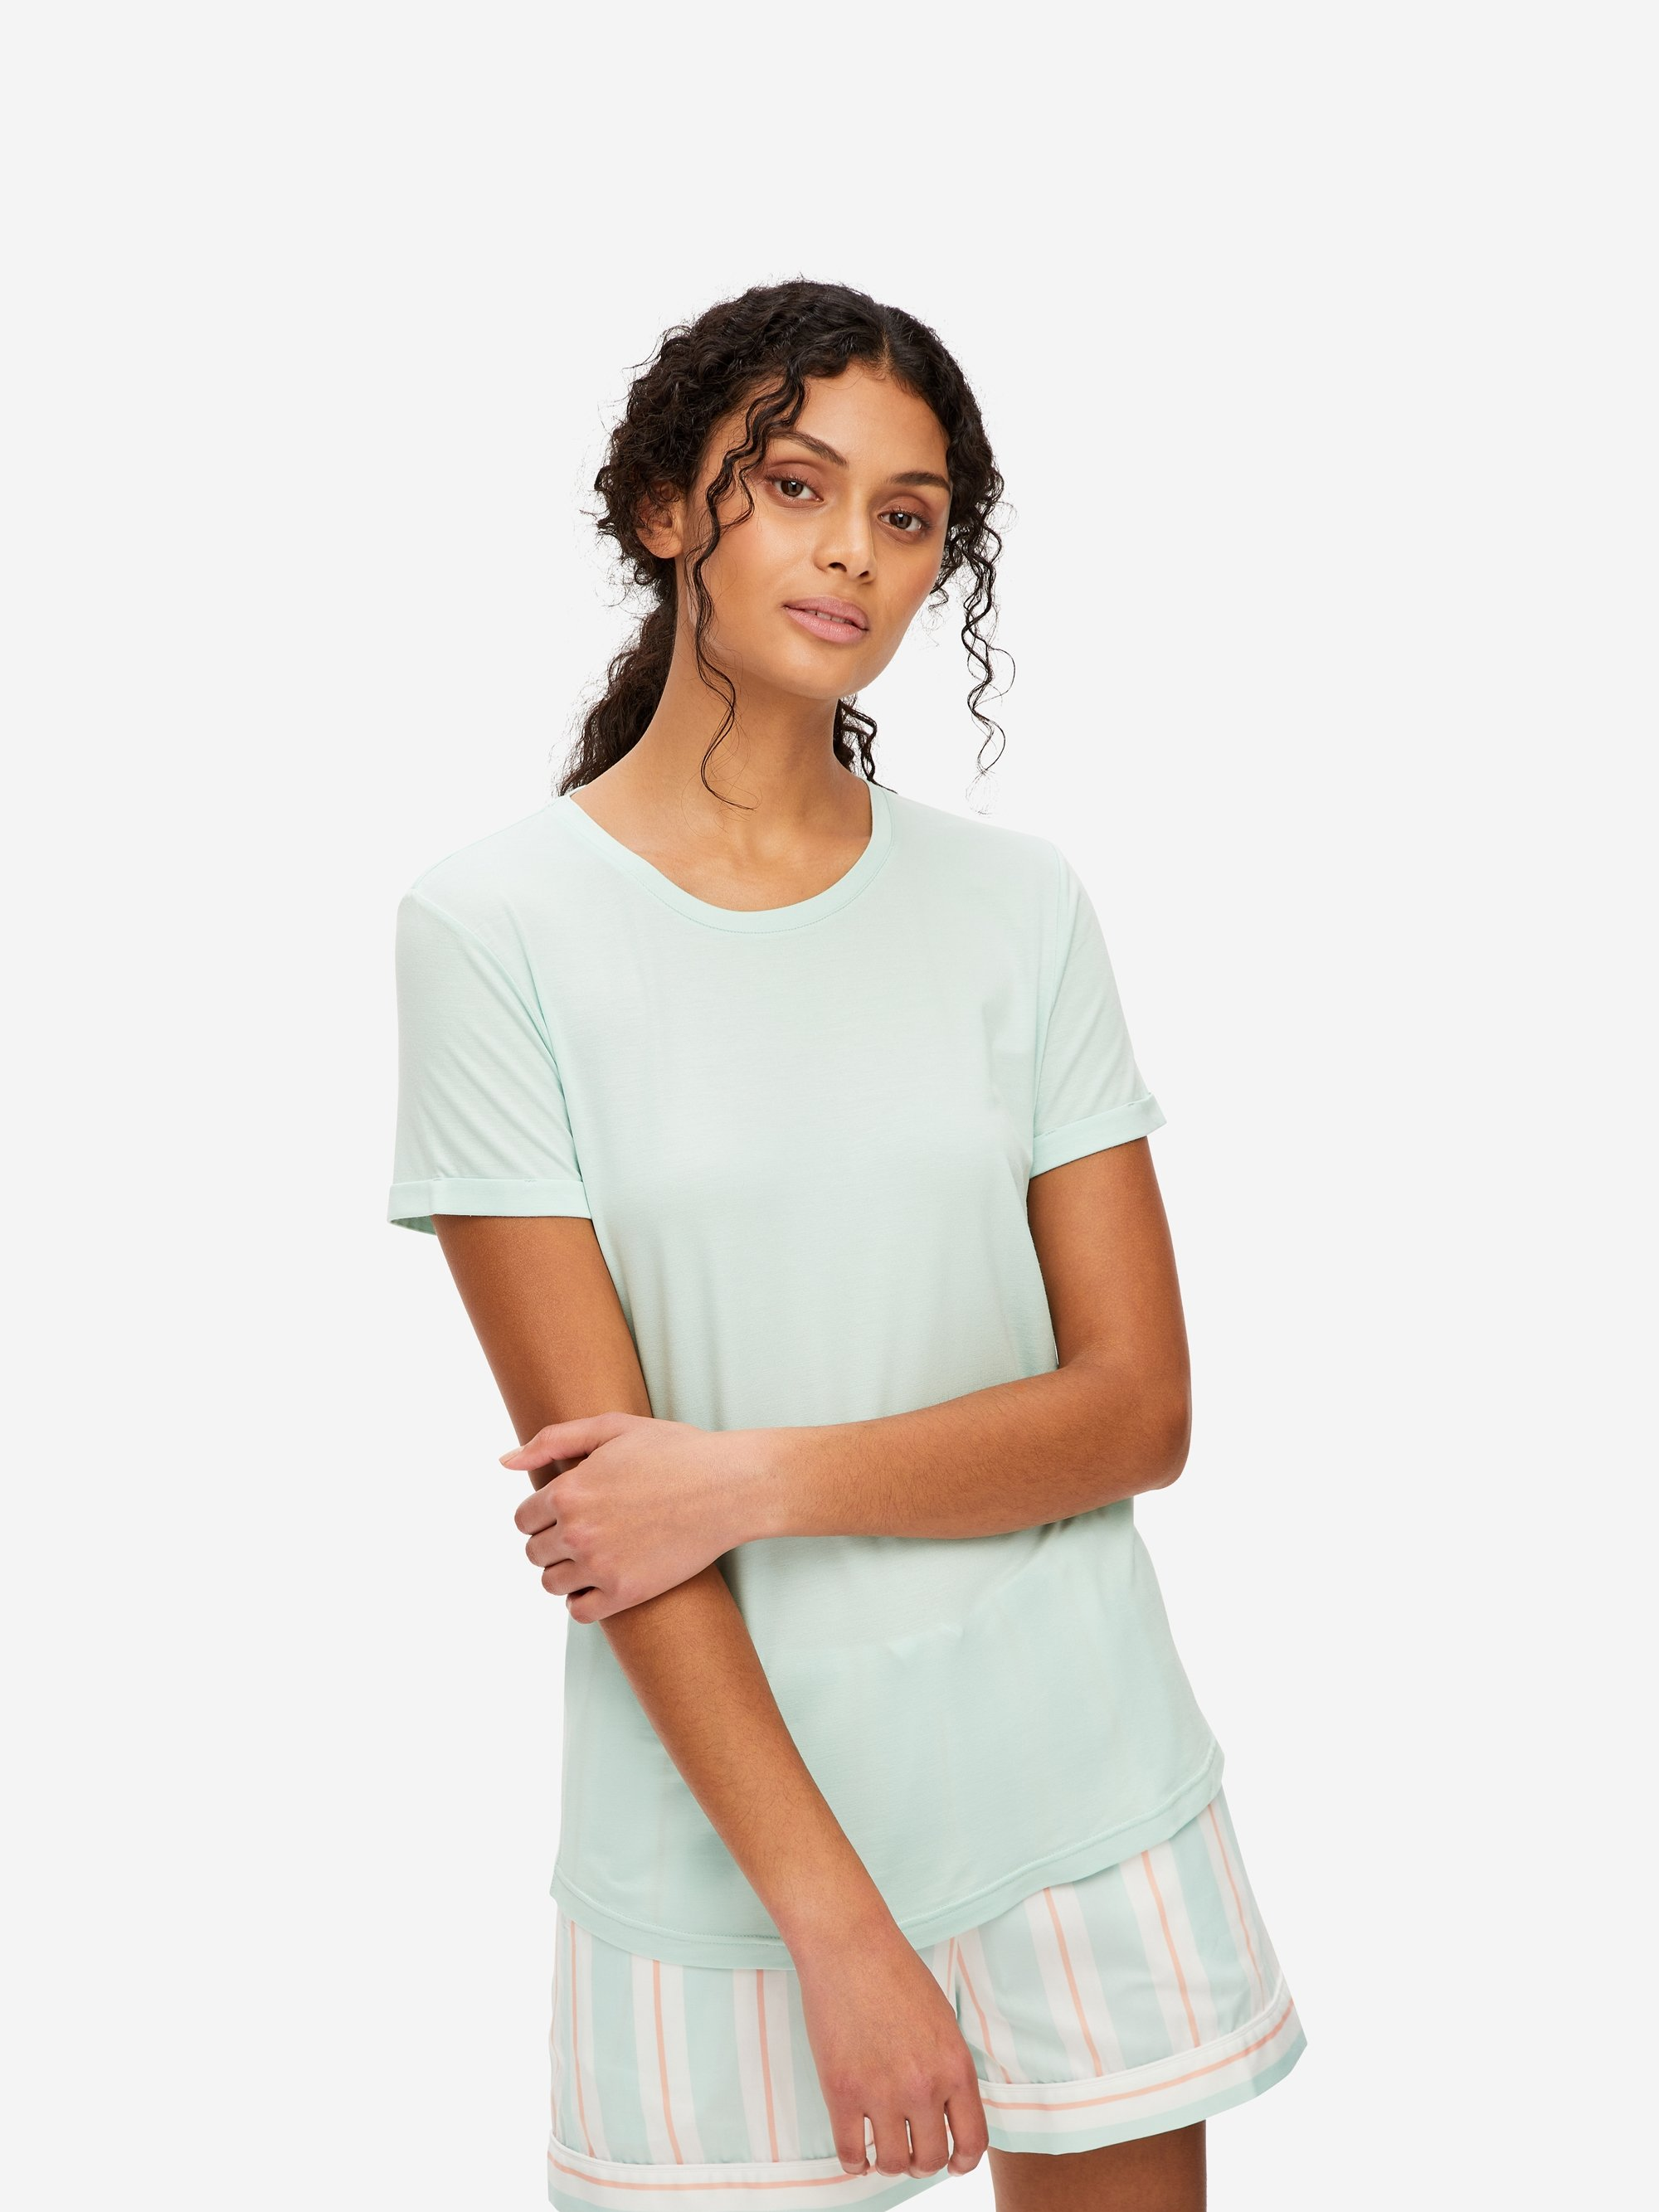 Women's Leisure T-Shirt Lara Micro Modal Stretch Mint